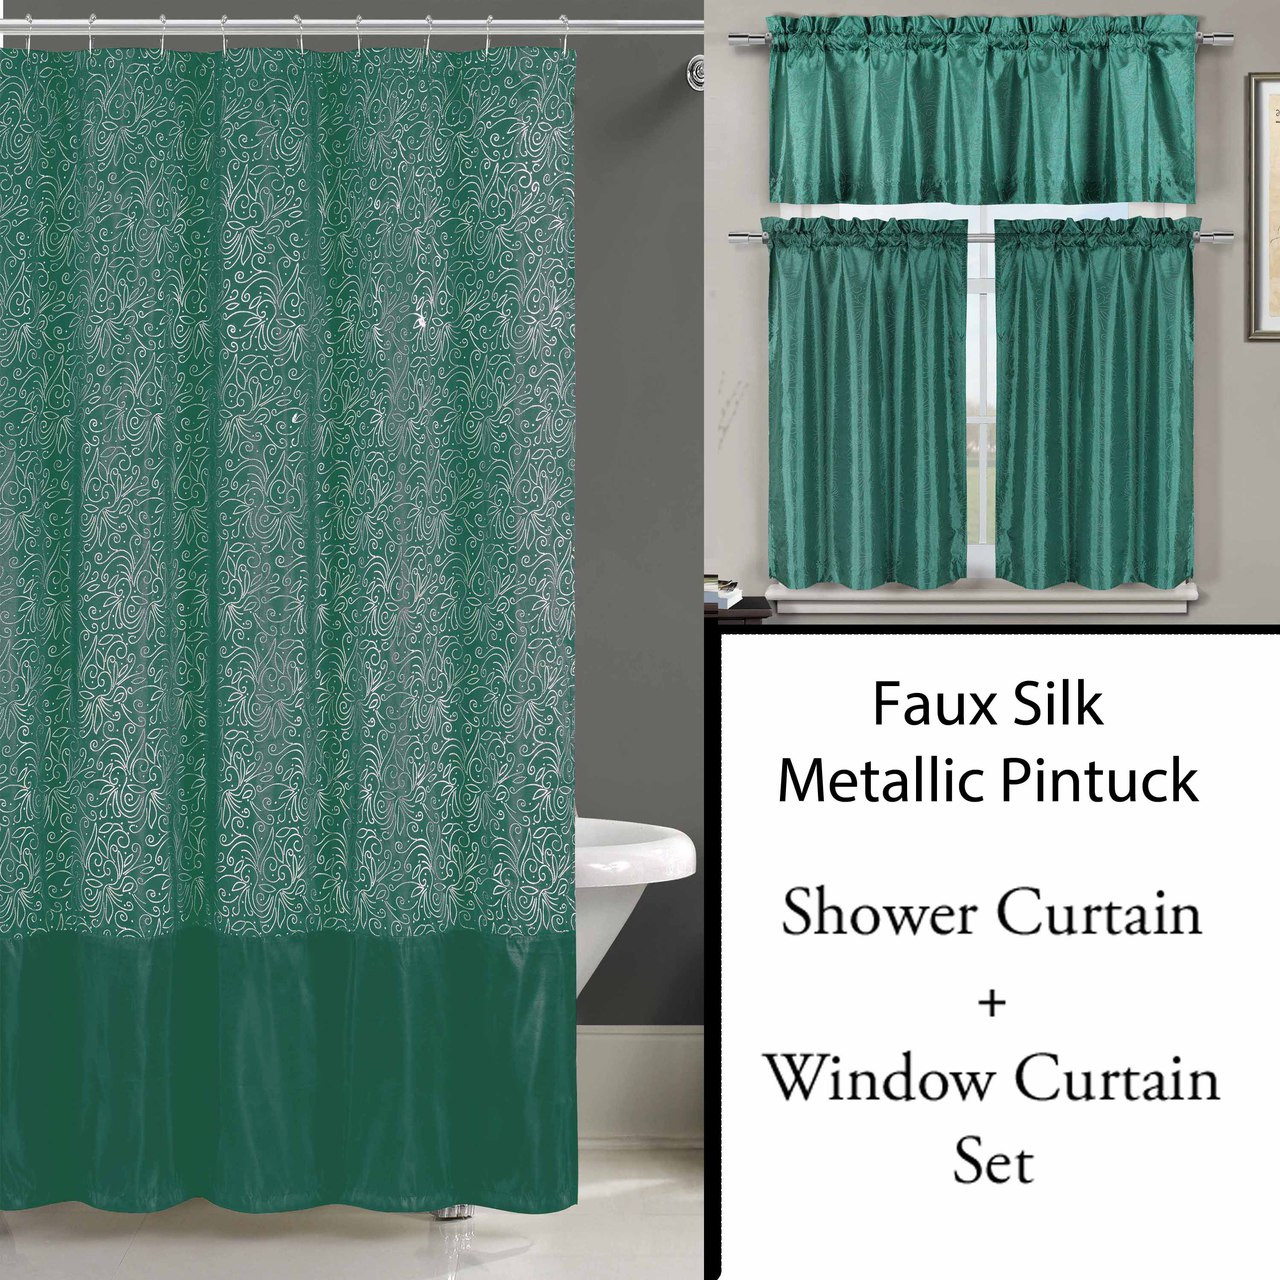 teal shower curtain and 3 pc window curtain set metallic raised pin dots abstract floral design